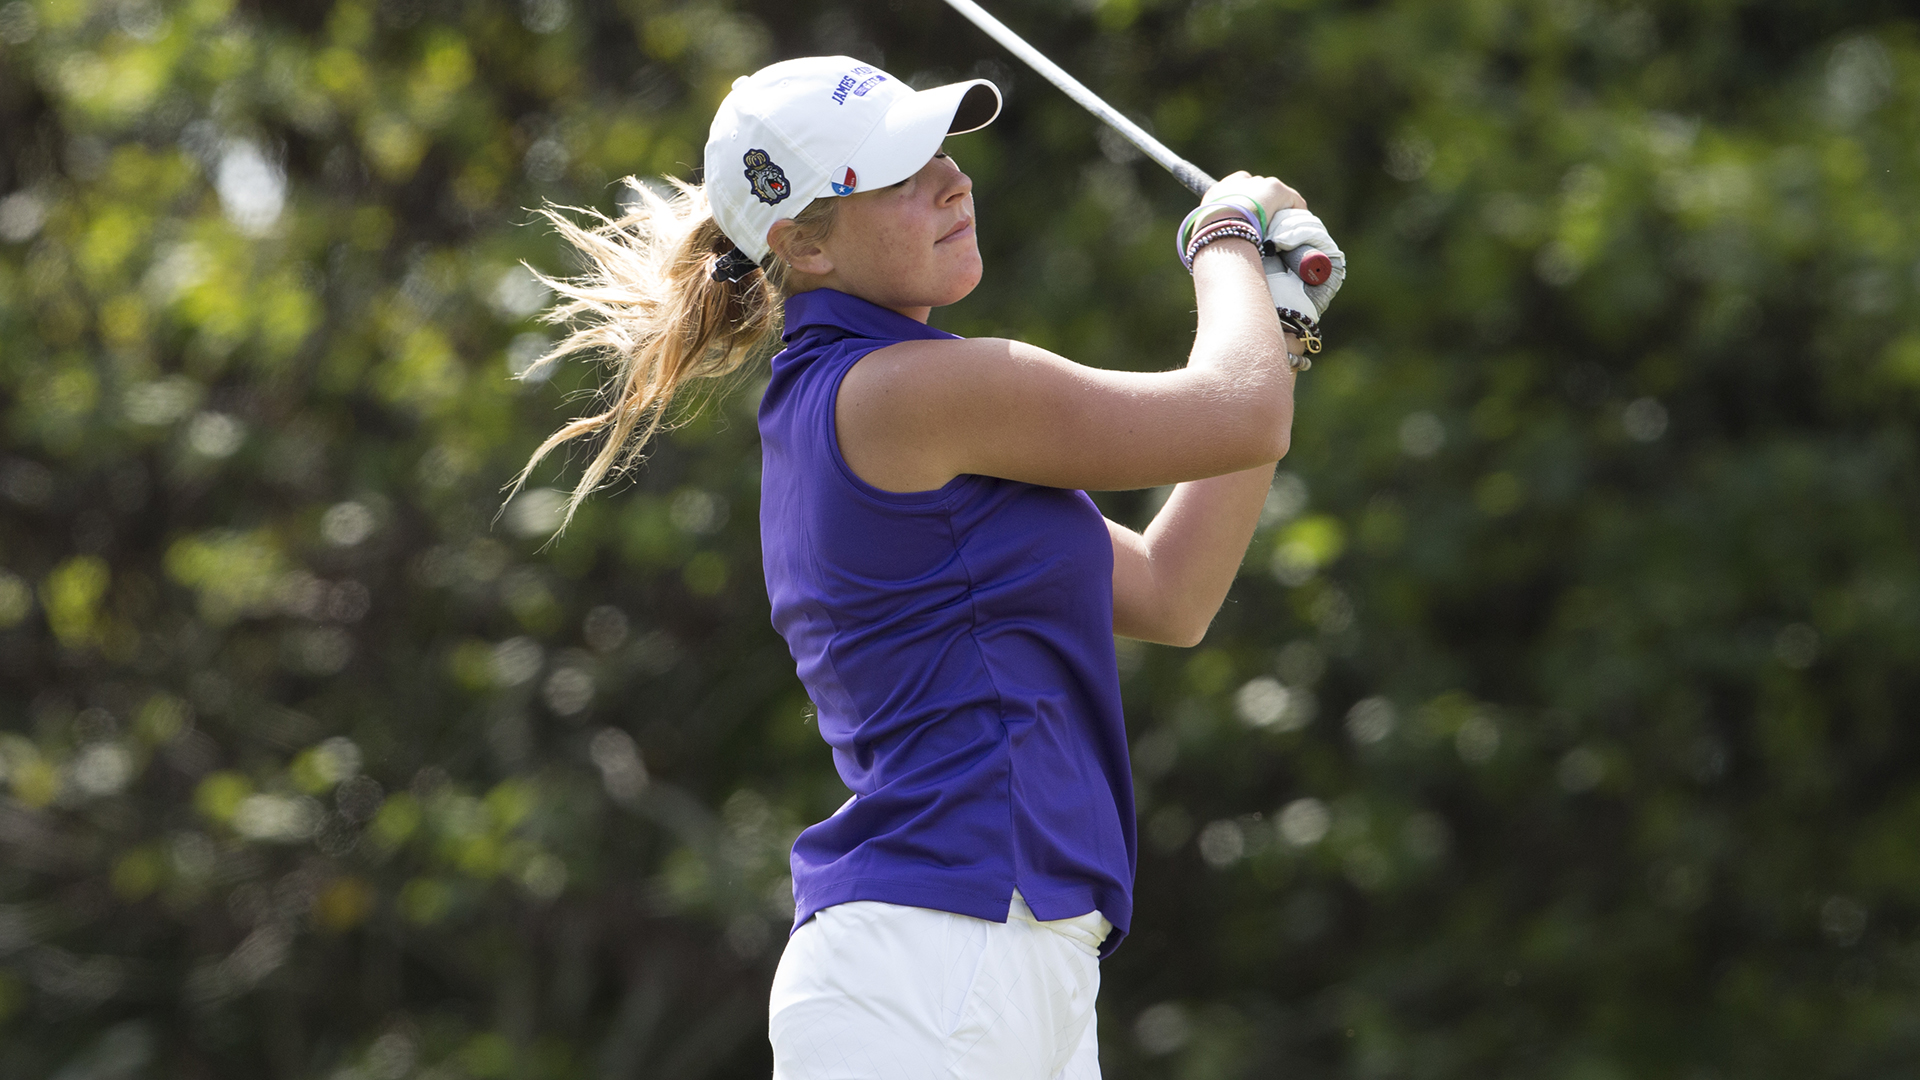 Women's Golf: Comegys' Career Day Paces Dukes at UD Blue Hen Invite)